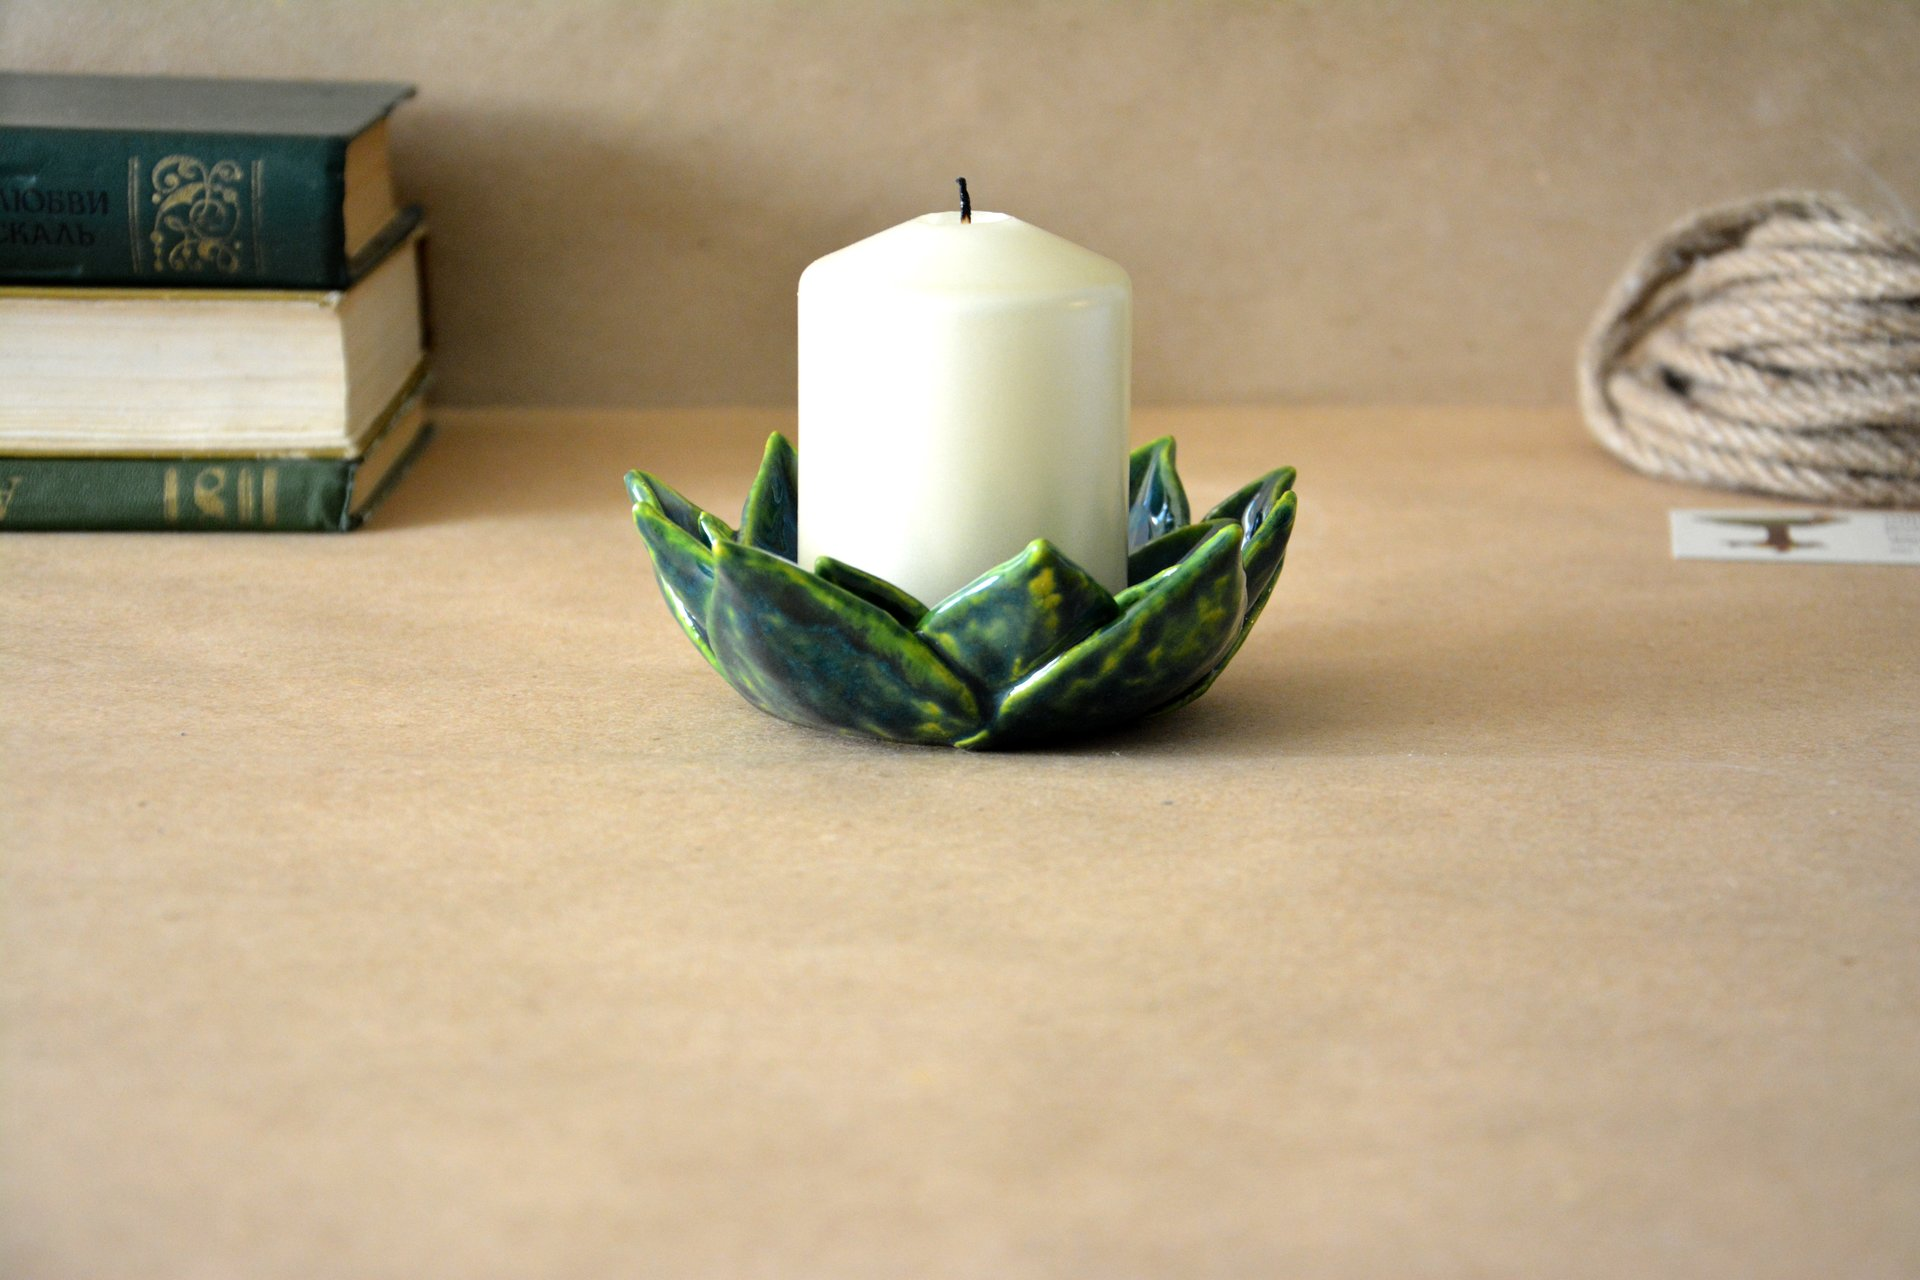 Candle holder Stone rose - Ceramic Candl-holders, diameter - 11 cm, photo 3 of 3.